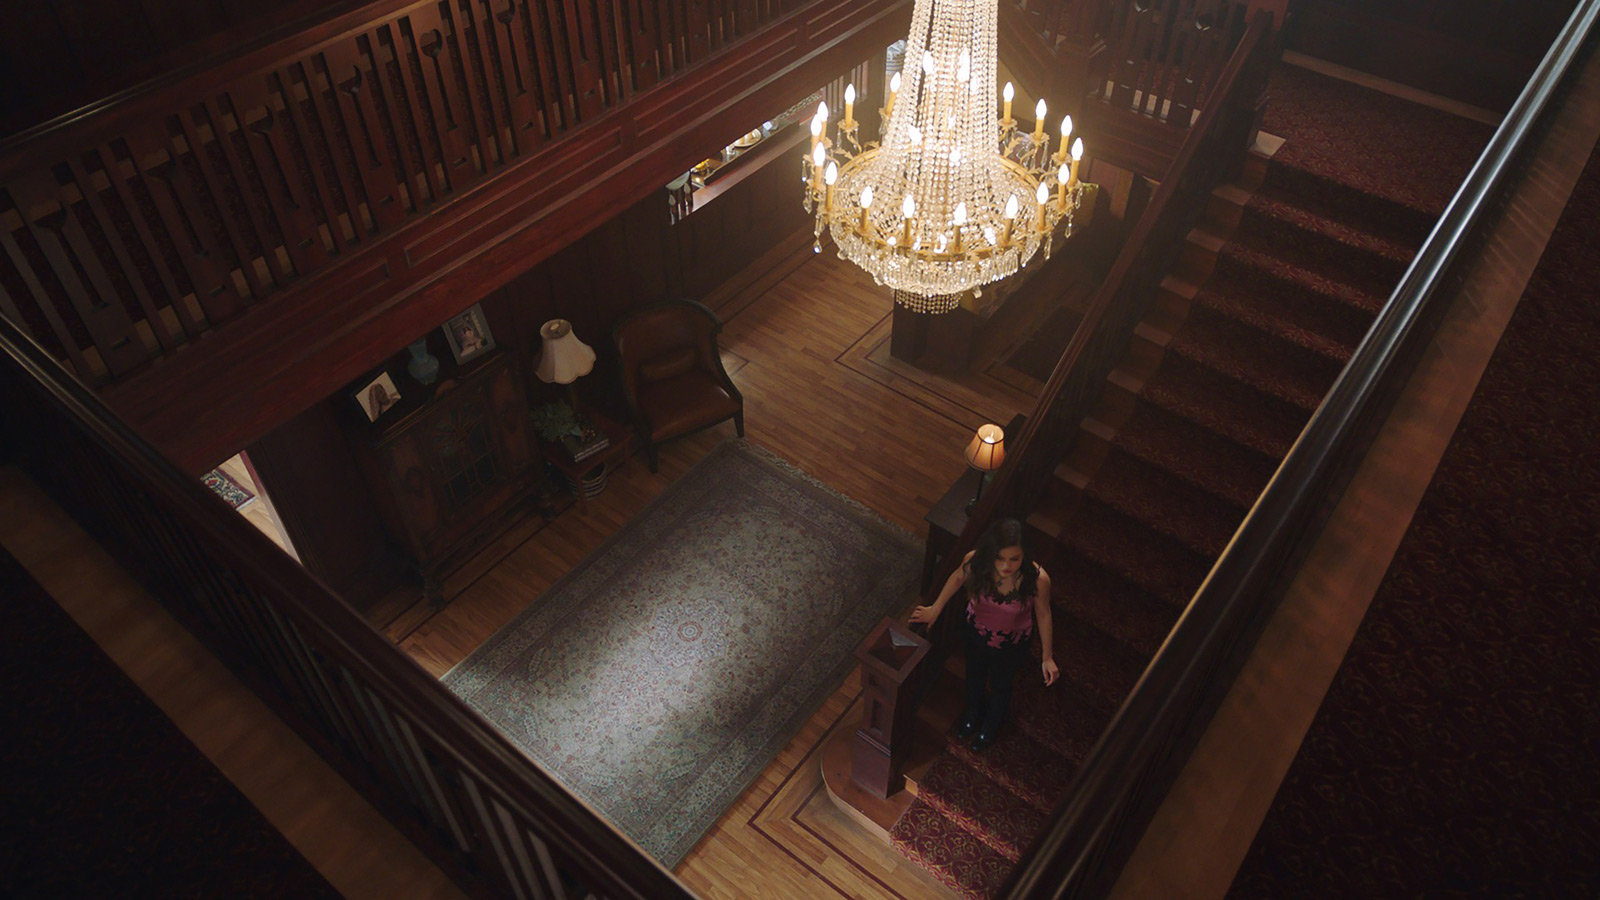 CHARMED: S1 - VERA MANOR - FOYER - SCREEN STILL